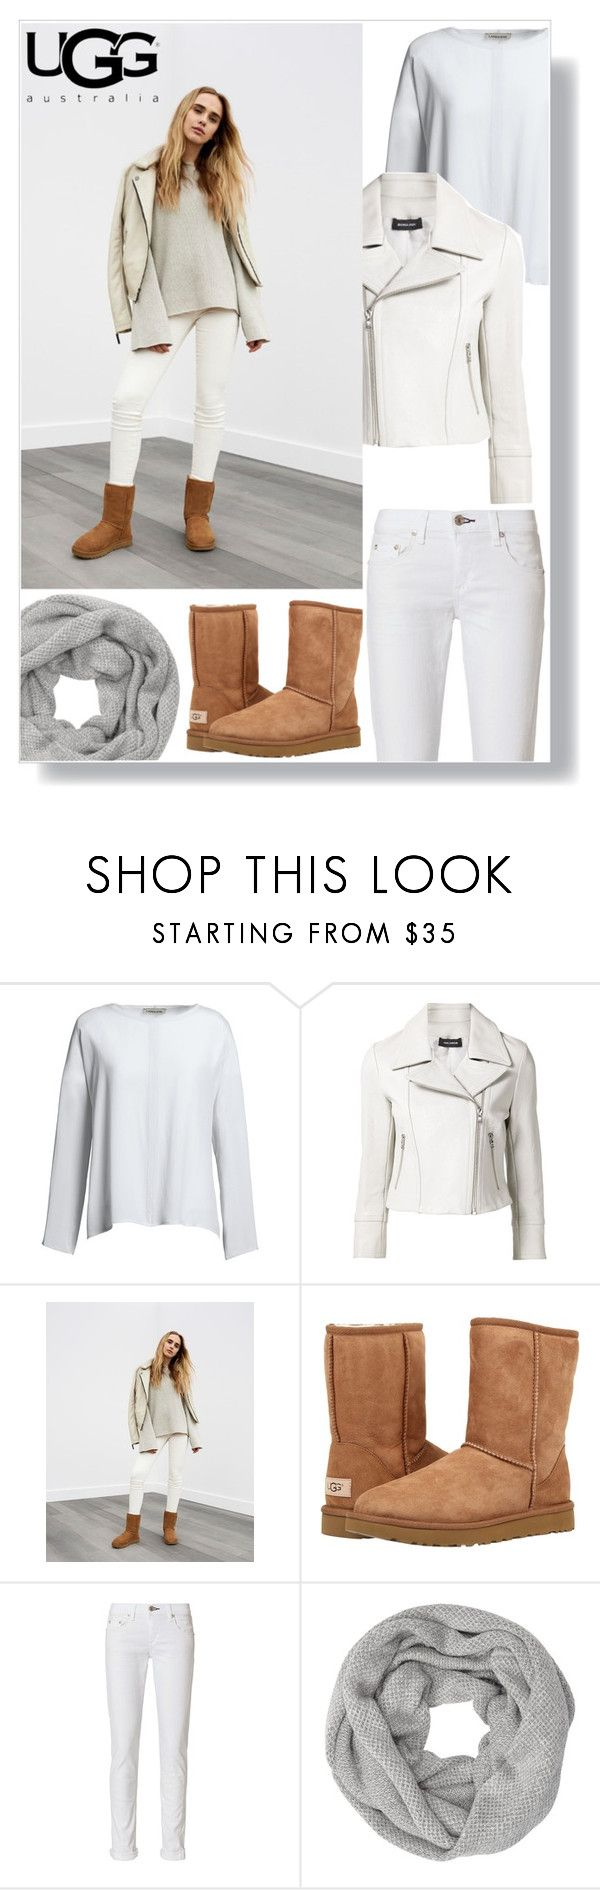 """""""The Icon Perfected: UGG Classic II Contest Entry"""" by lana-baloley ❤ liked on Polyvore featuring Canvas by Lands' End, Yigal AzrouÃ«l, UGG, UGG Australia, rag & bone, John Lewis, ugg and contestentry"""